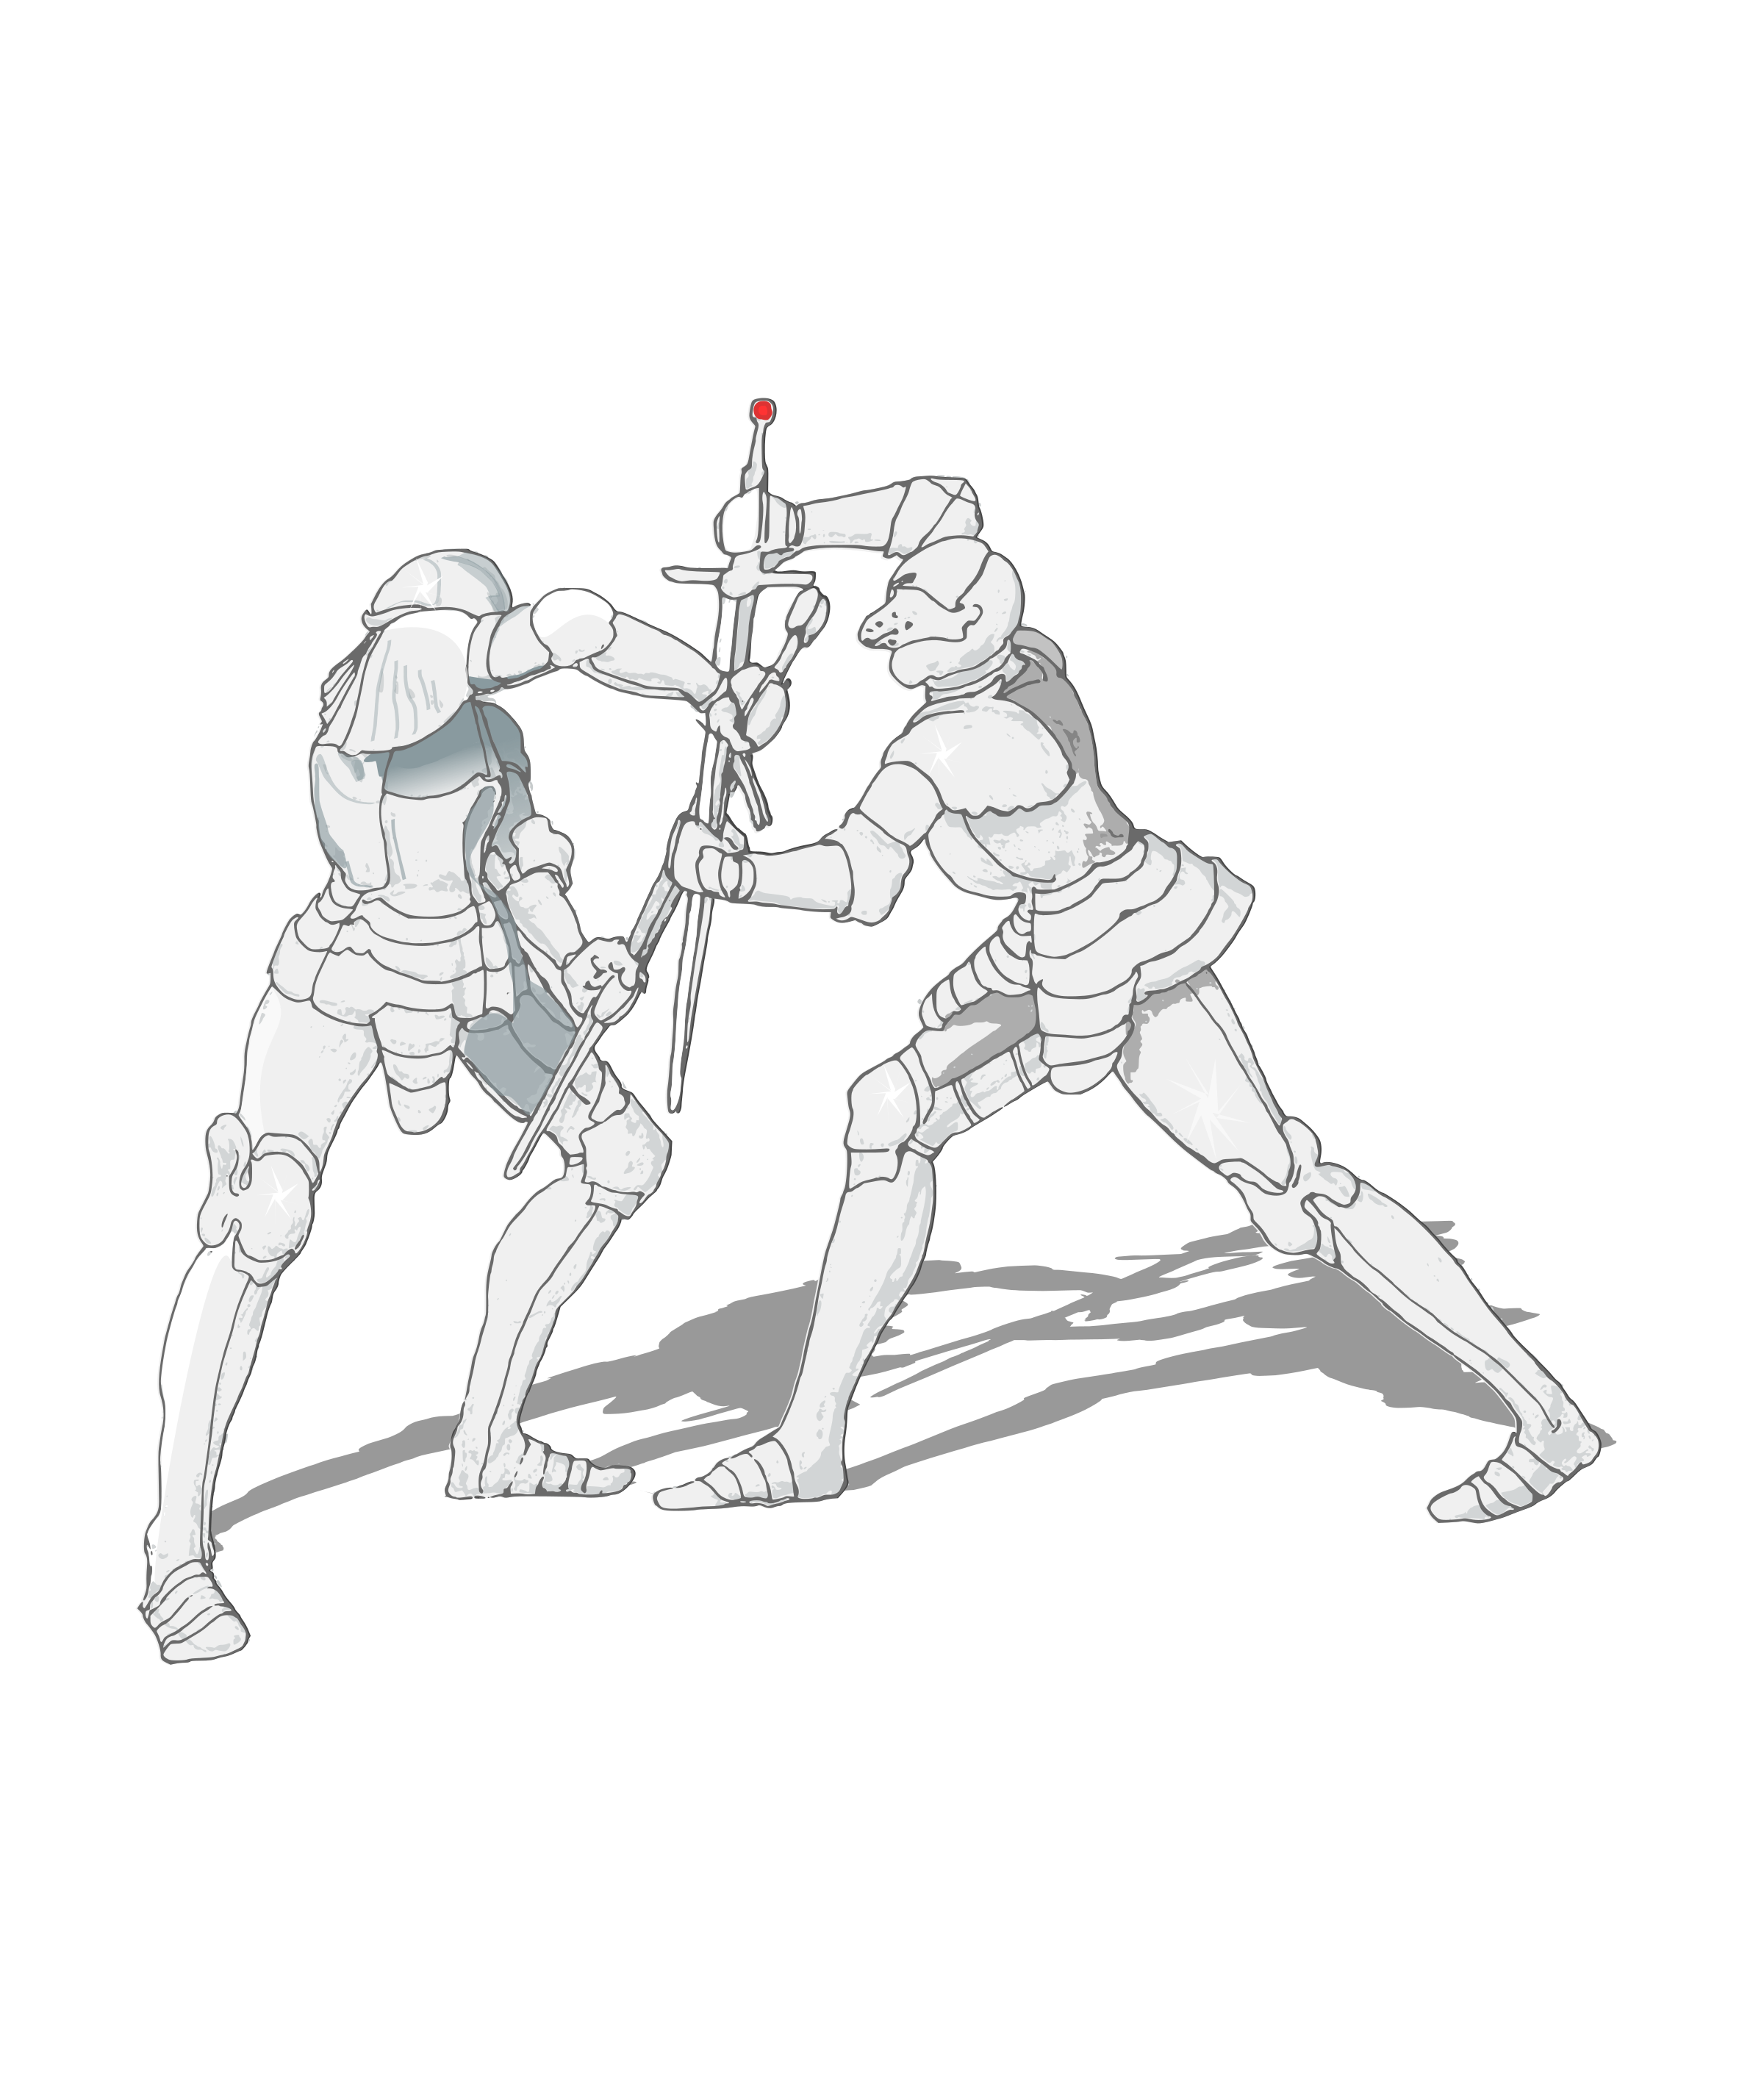 free download Sword Fight Drawing at GetDrawings